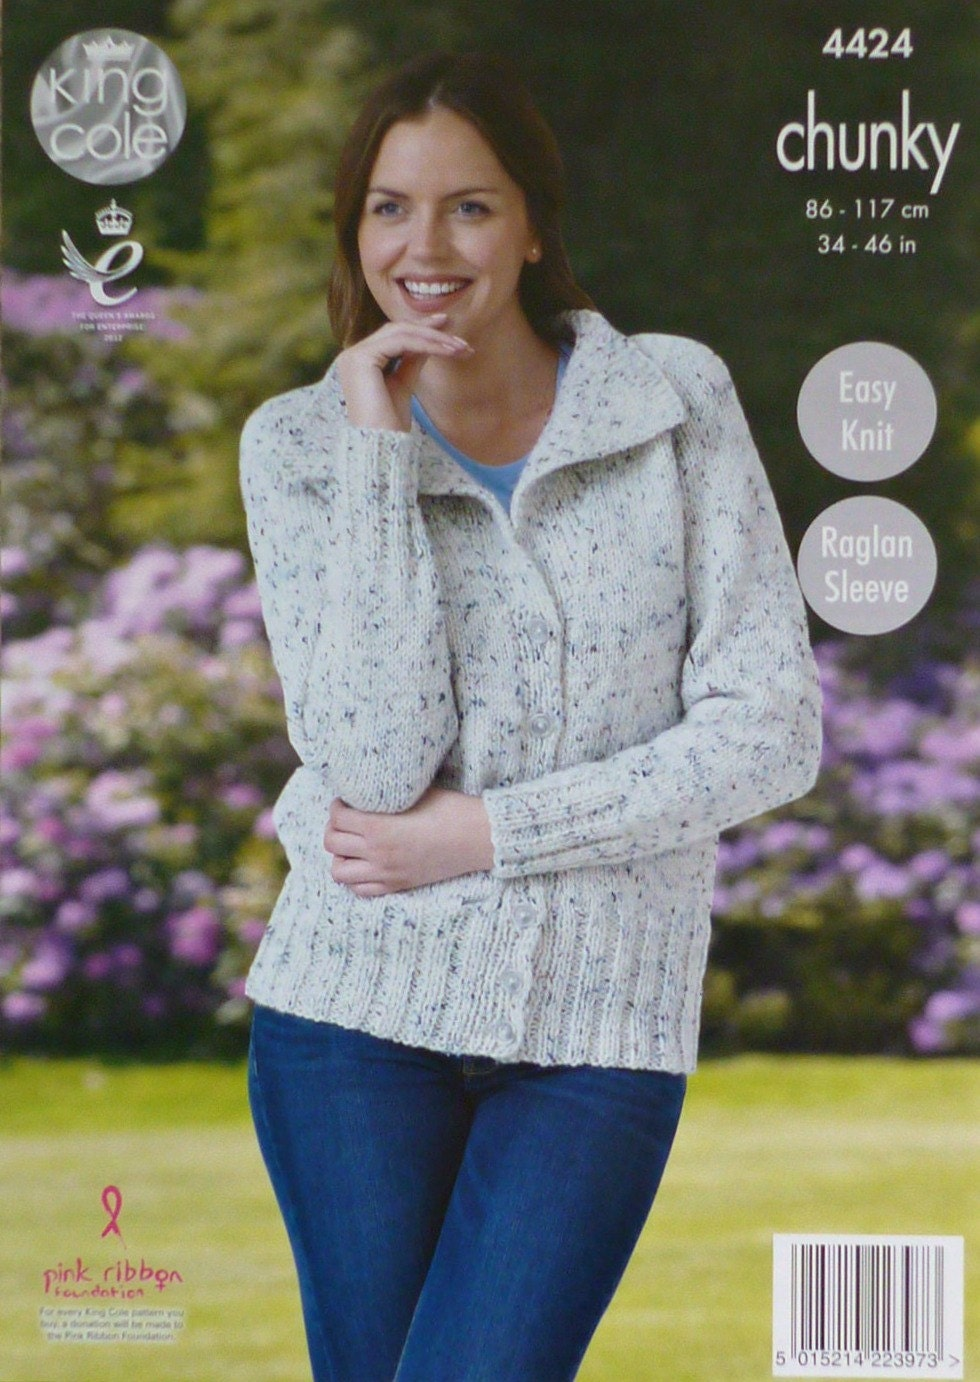 Knitting Pattern Ladies Short Sleeve Jumper : Womens Knitting Pattern K4424 Ladies EASY KNIT Short Sleeve Round Neck Jumper...